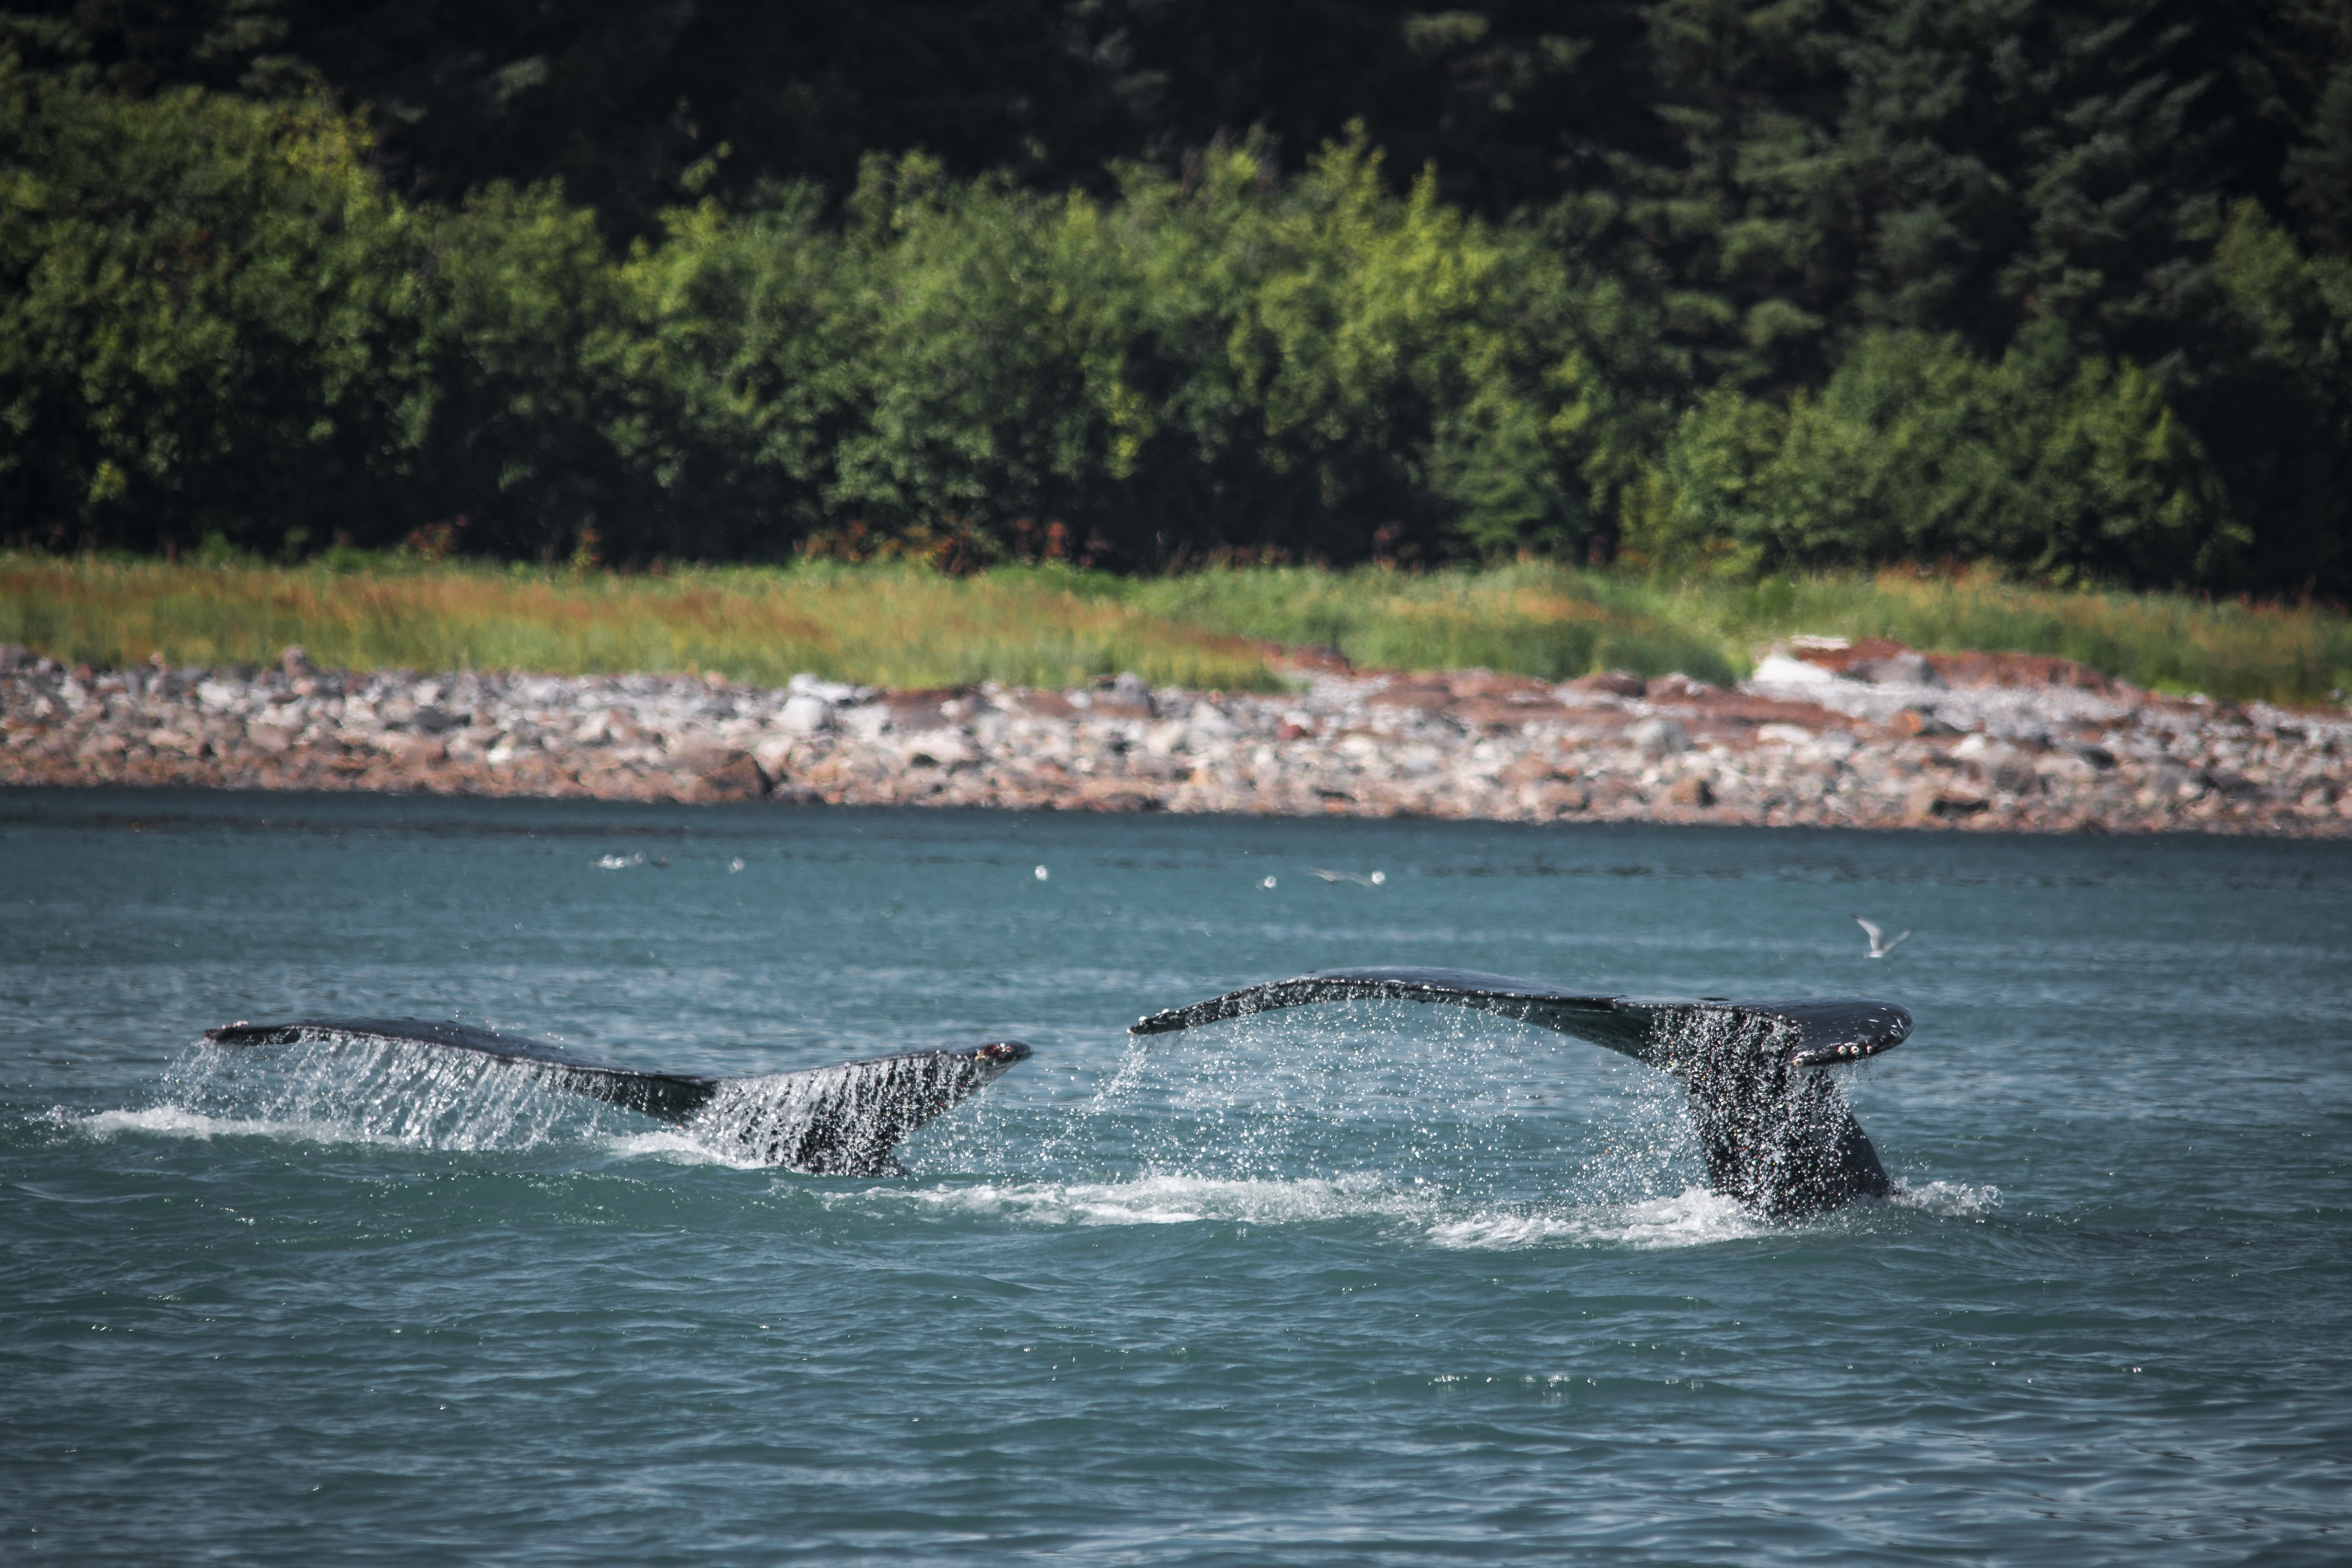 two whales near shoreline during daytime